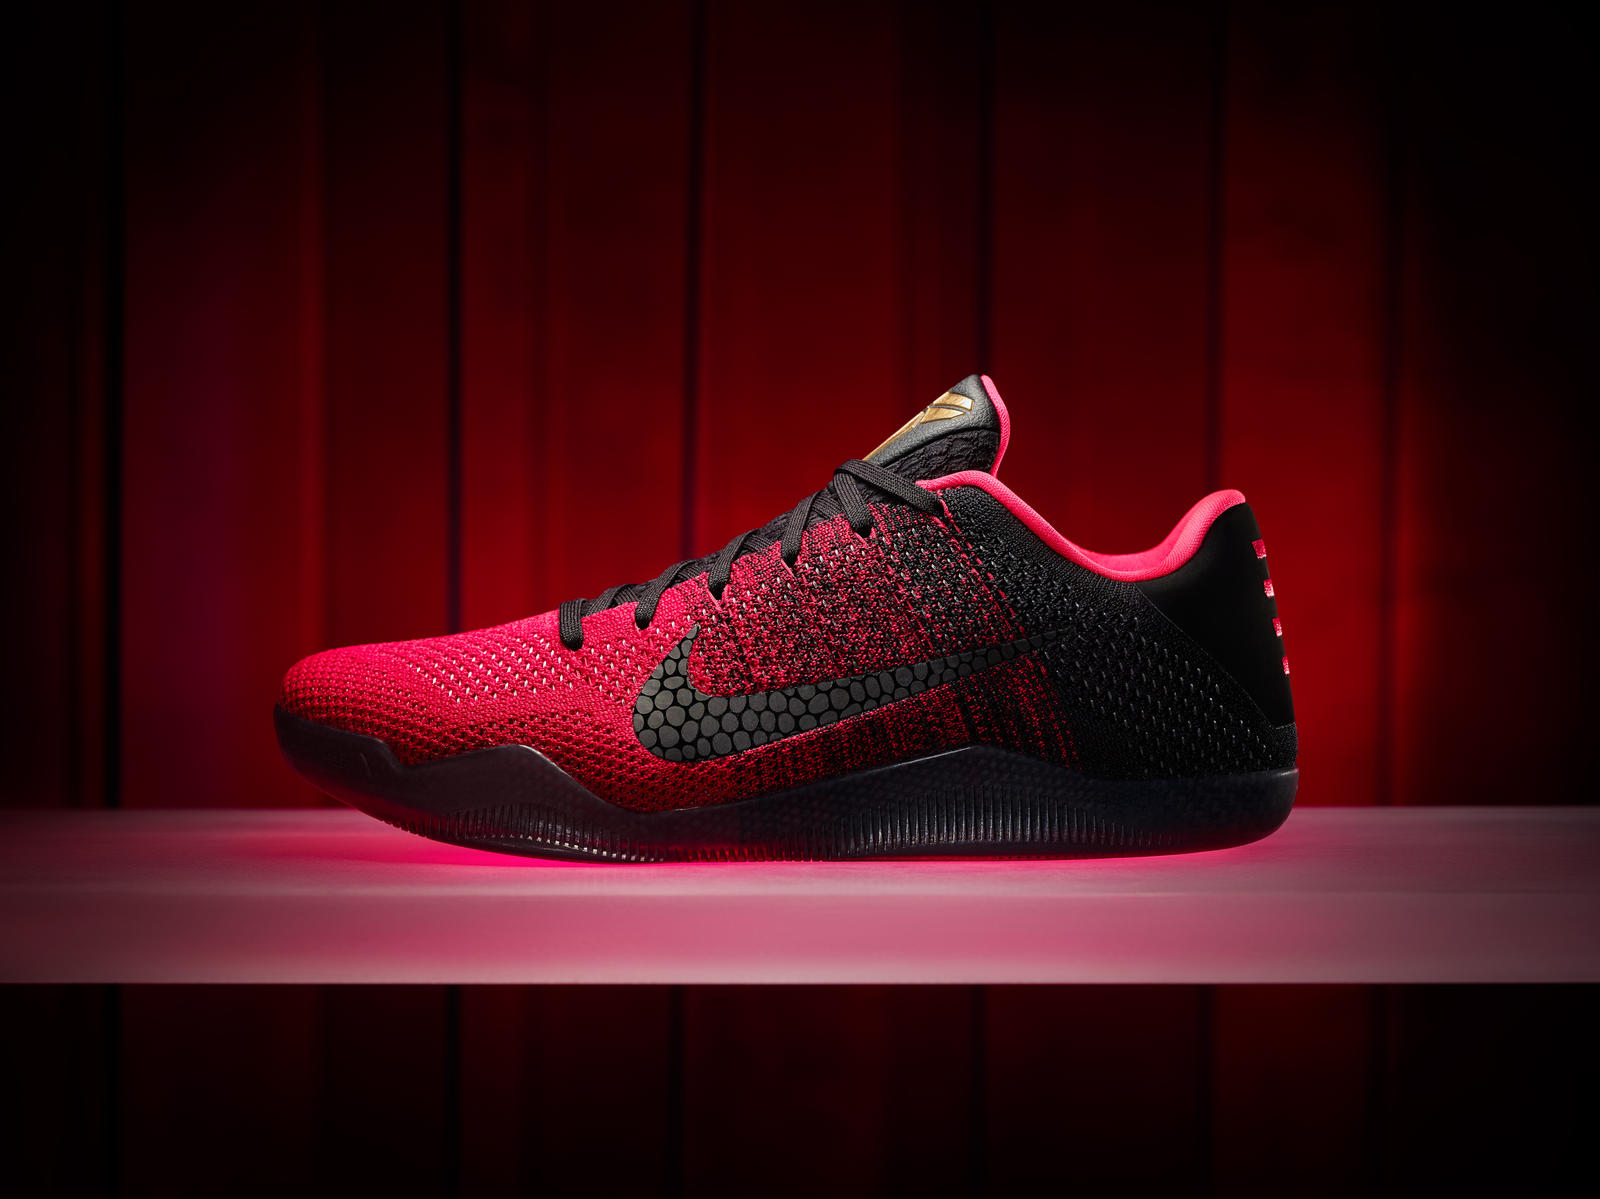 reputable site 52a3f 02f07 Introducing the Kobe 11